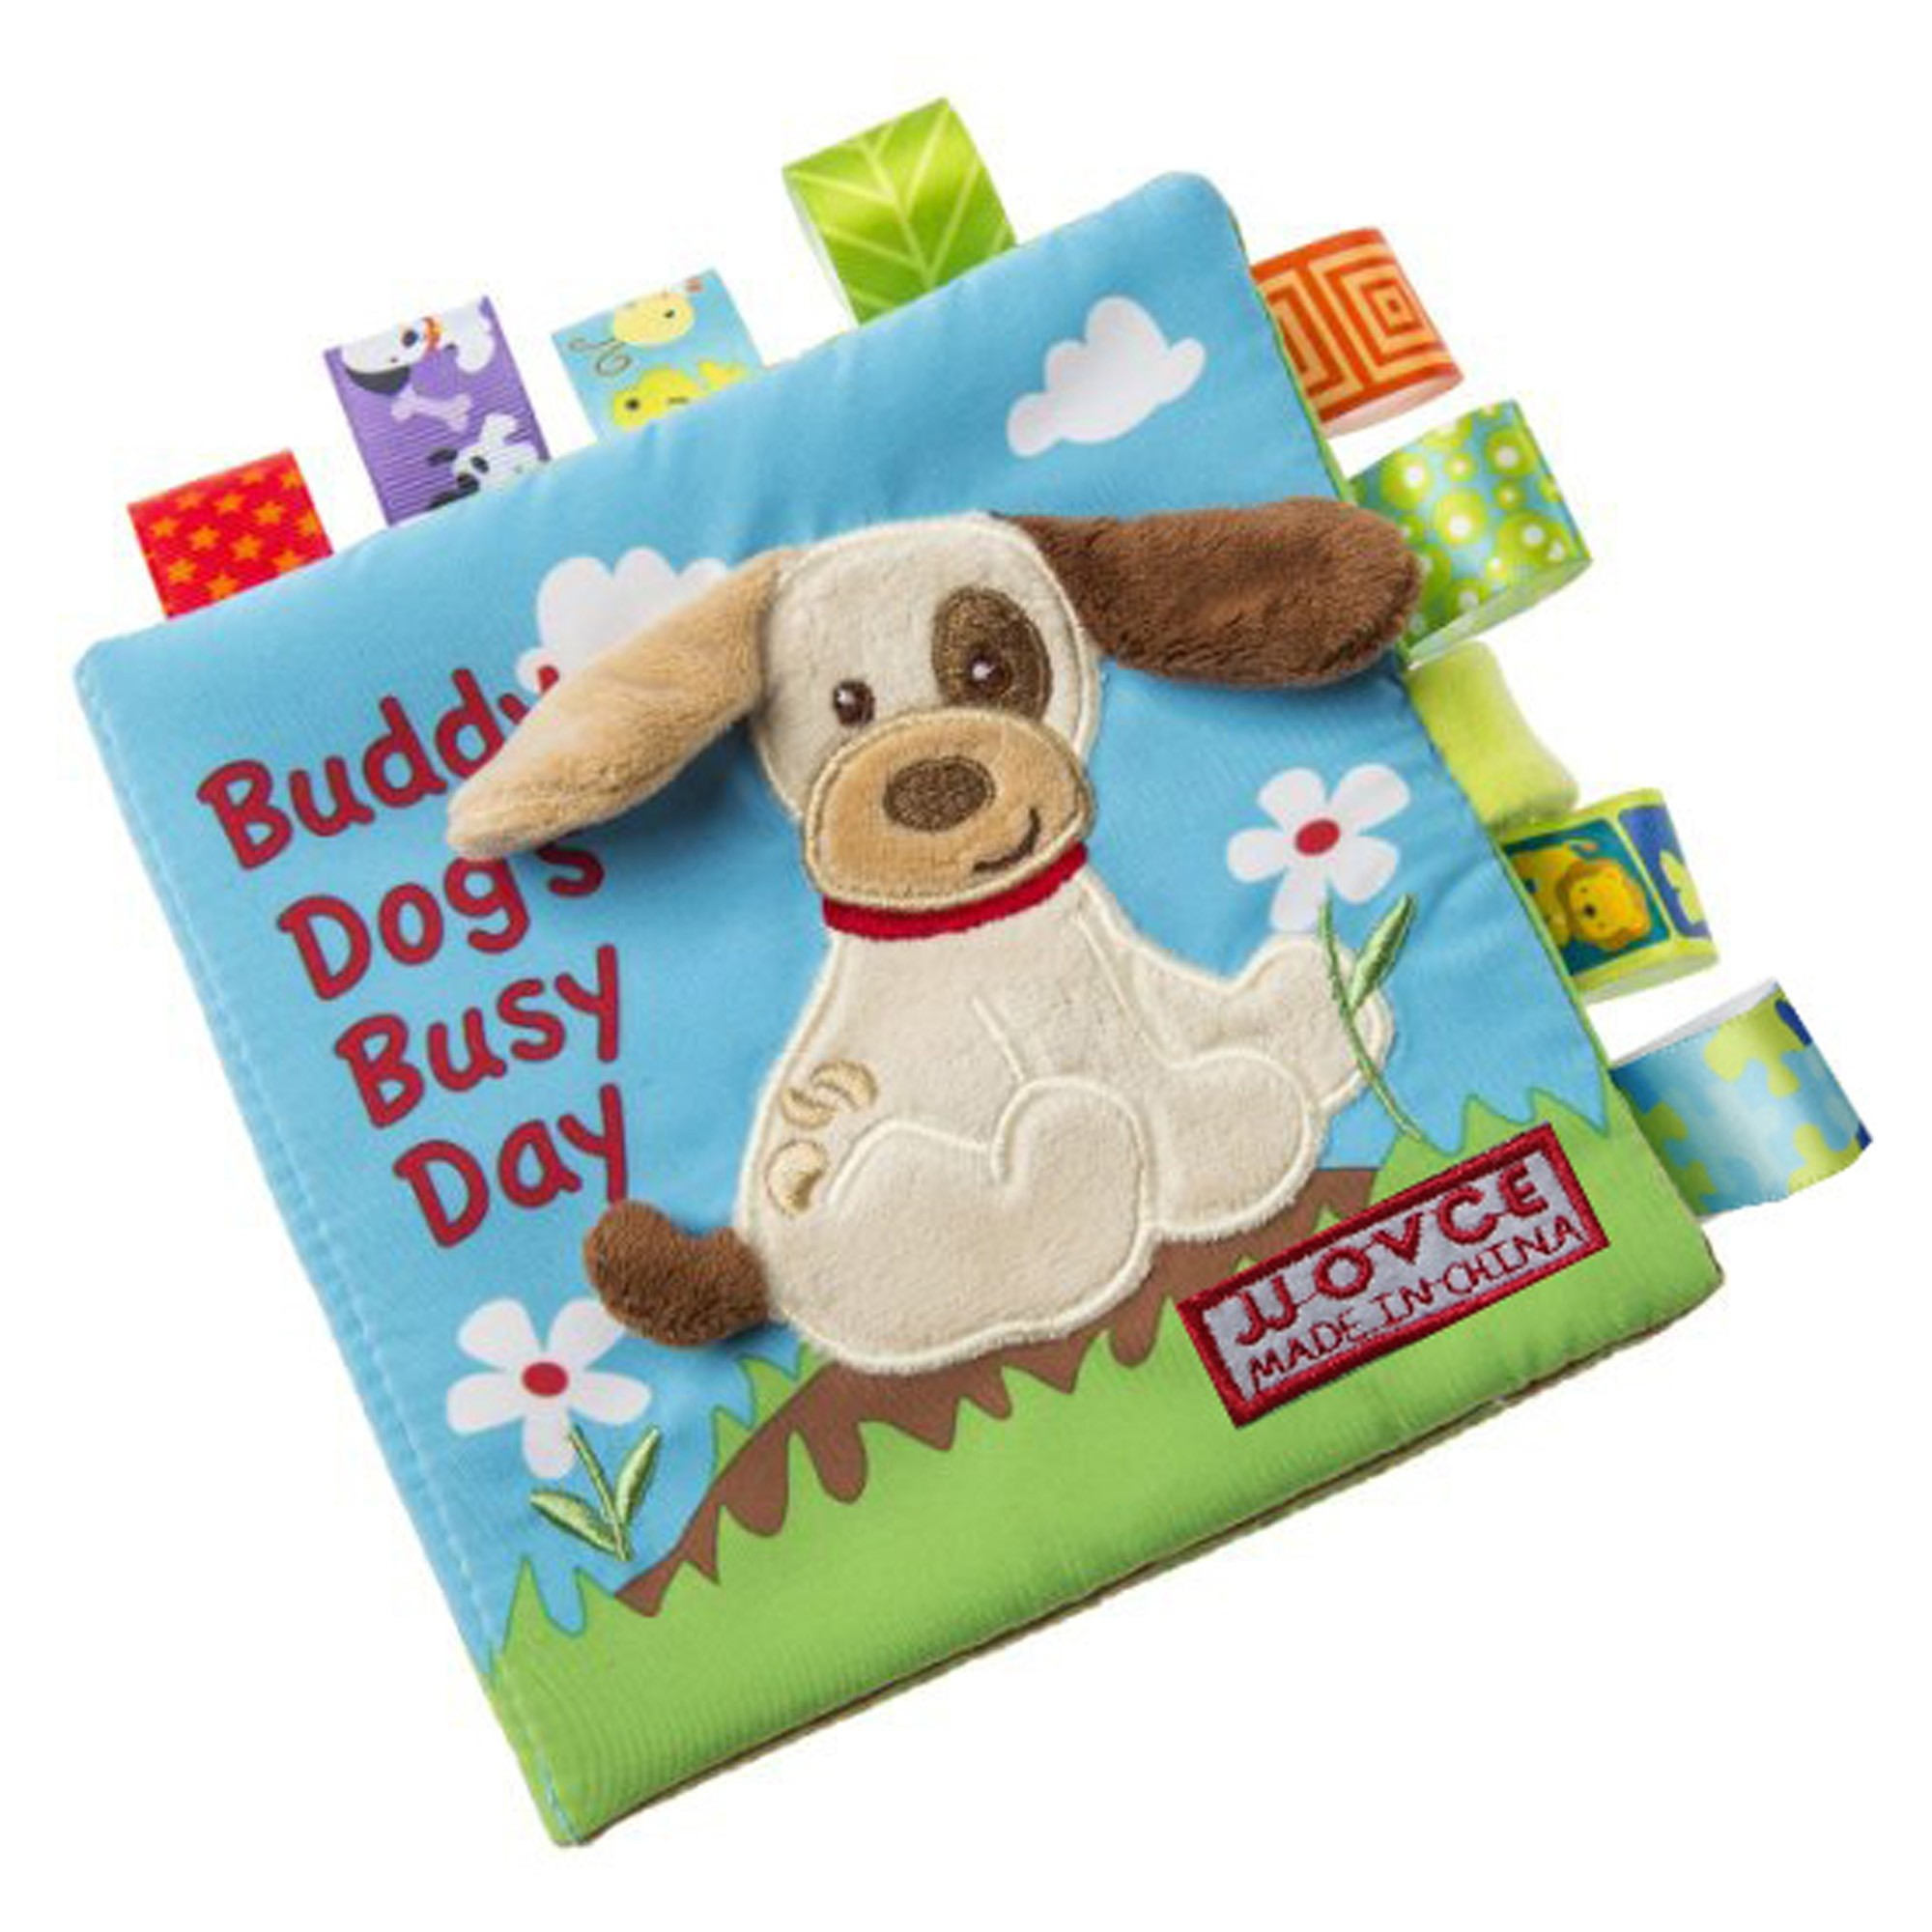 Buddy Dogs Busy Day Soft Cloth Intelligent Development Toy Book (3 Books/Lot)